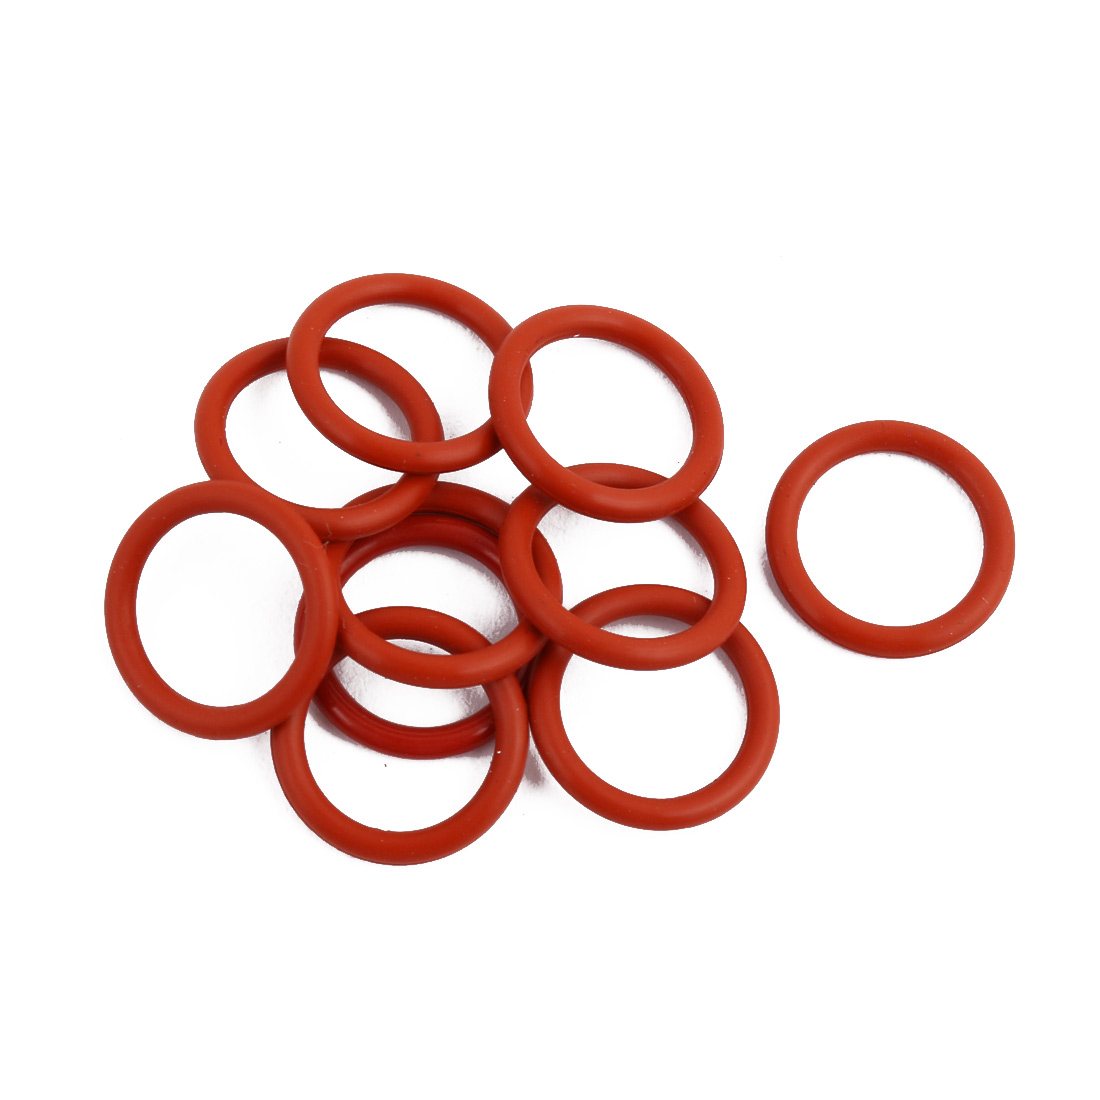 10Pcs Red Round Nitrile Butadiene Rubber NBR O-Ring 15mm OD 1.9mm Width